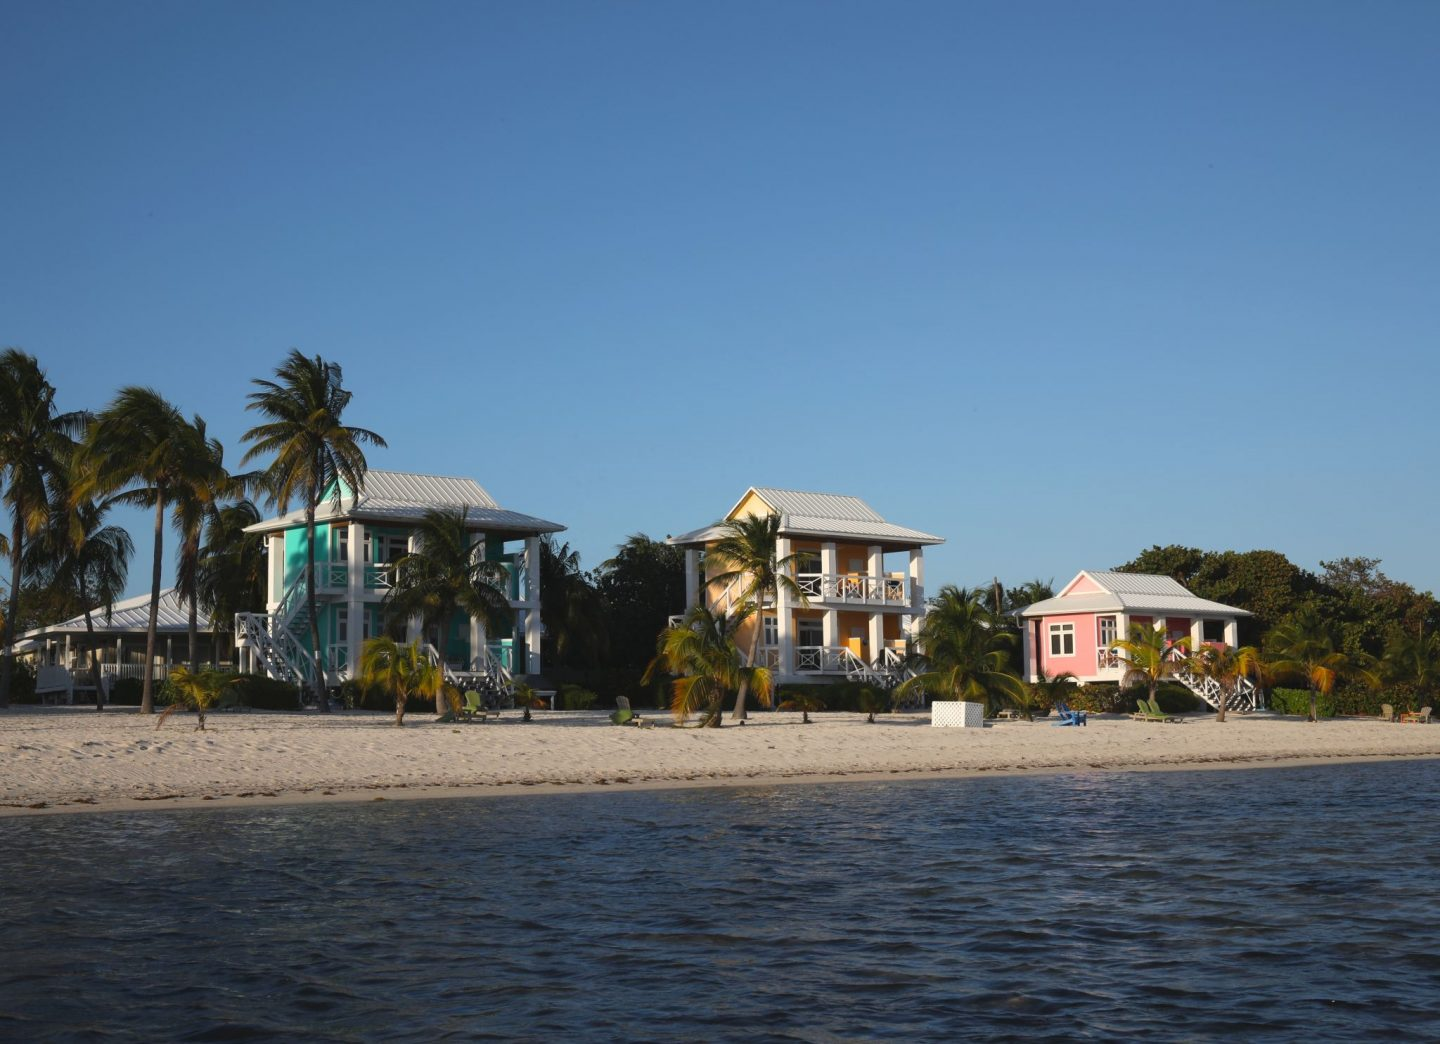 Coloured Houses, Southern Cross Club, Little Cayman, The Cayman Islands, Katie Heath, KALANCHOE